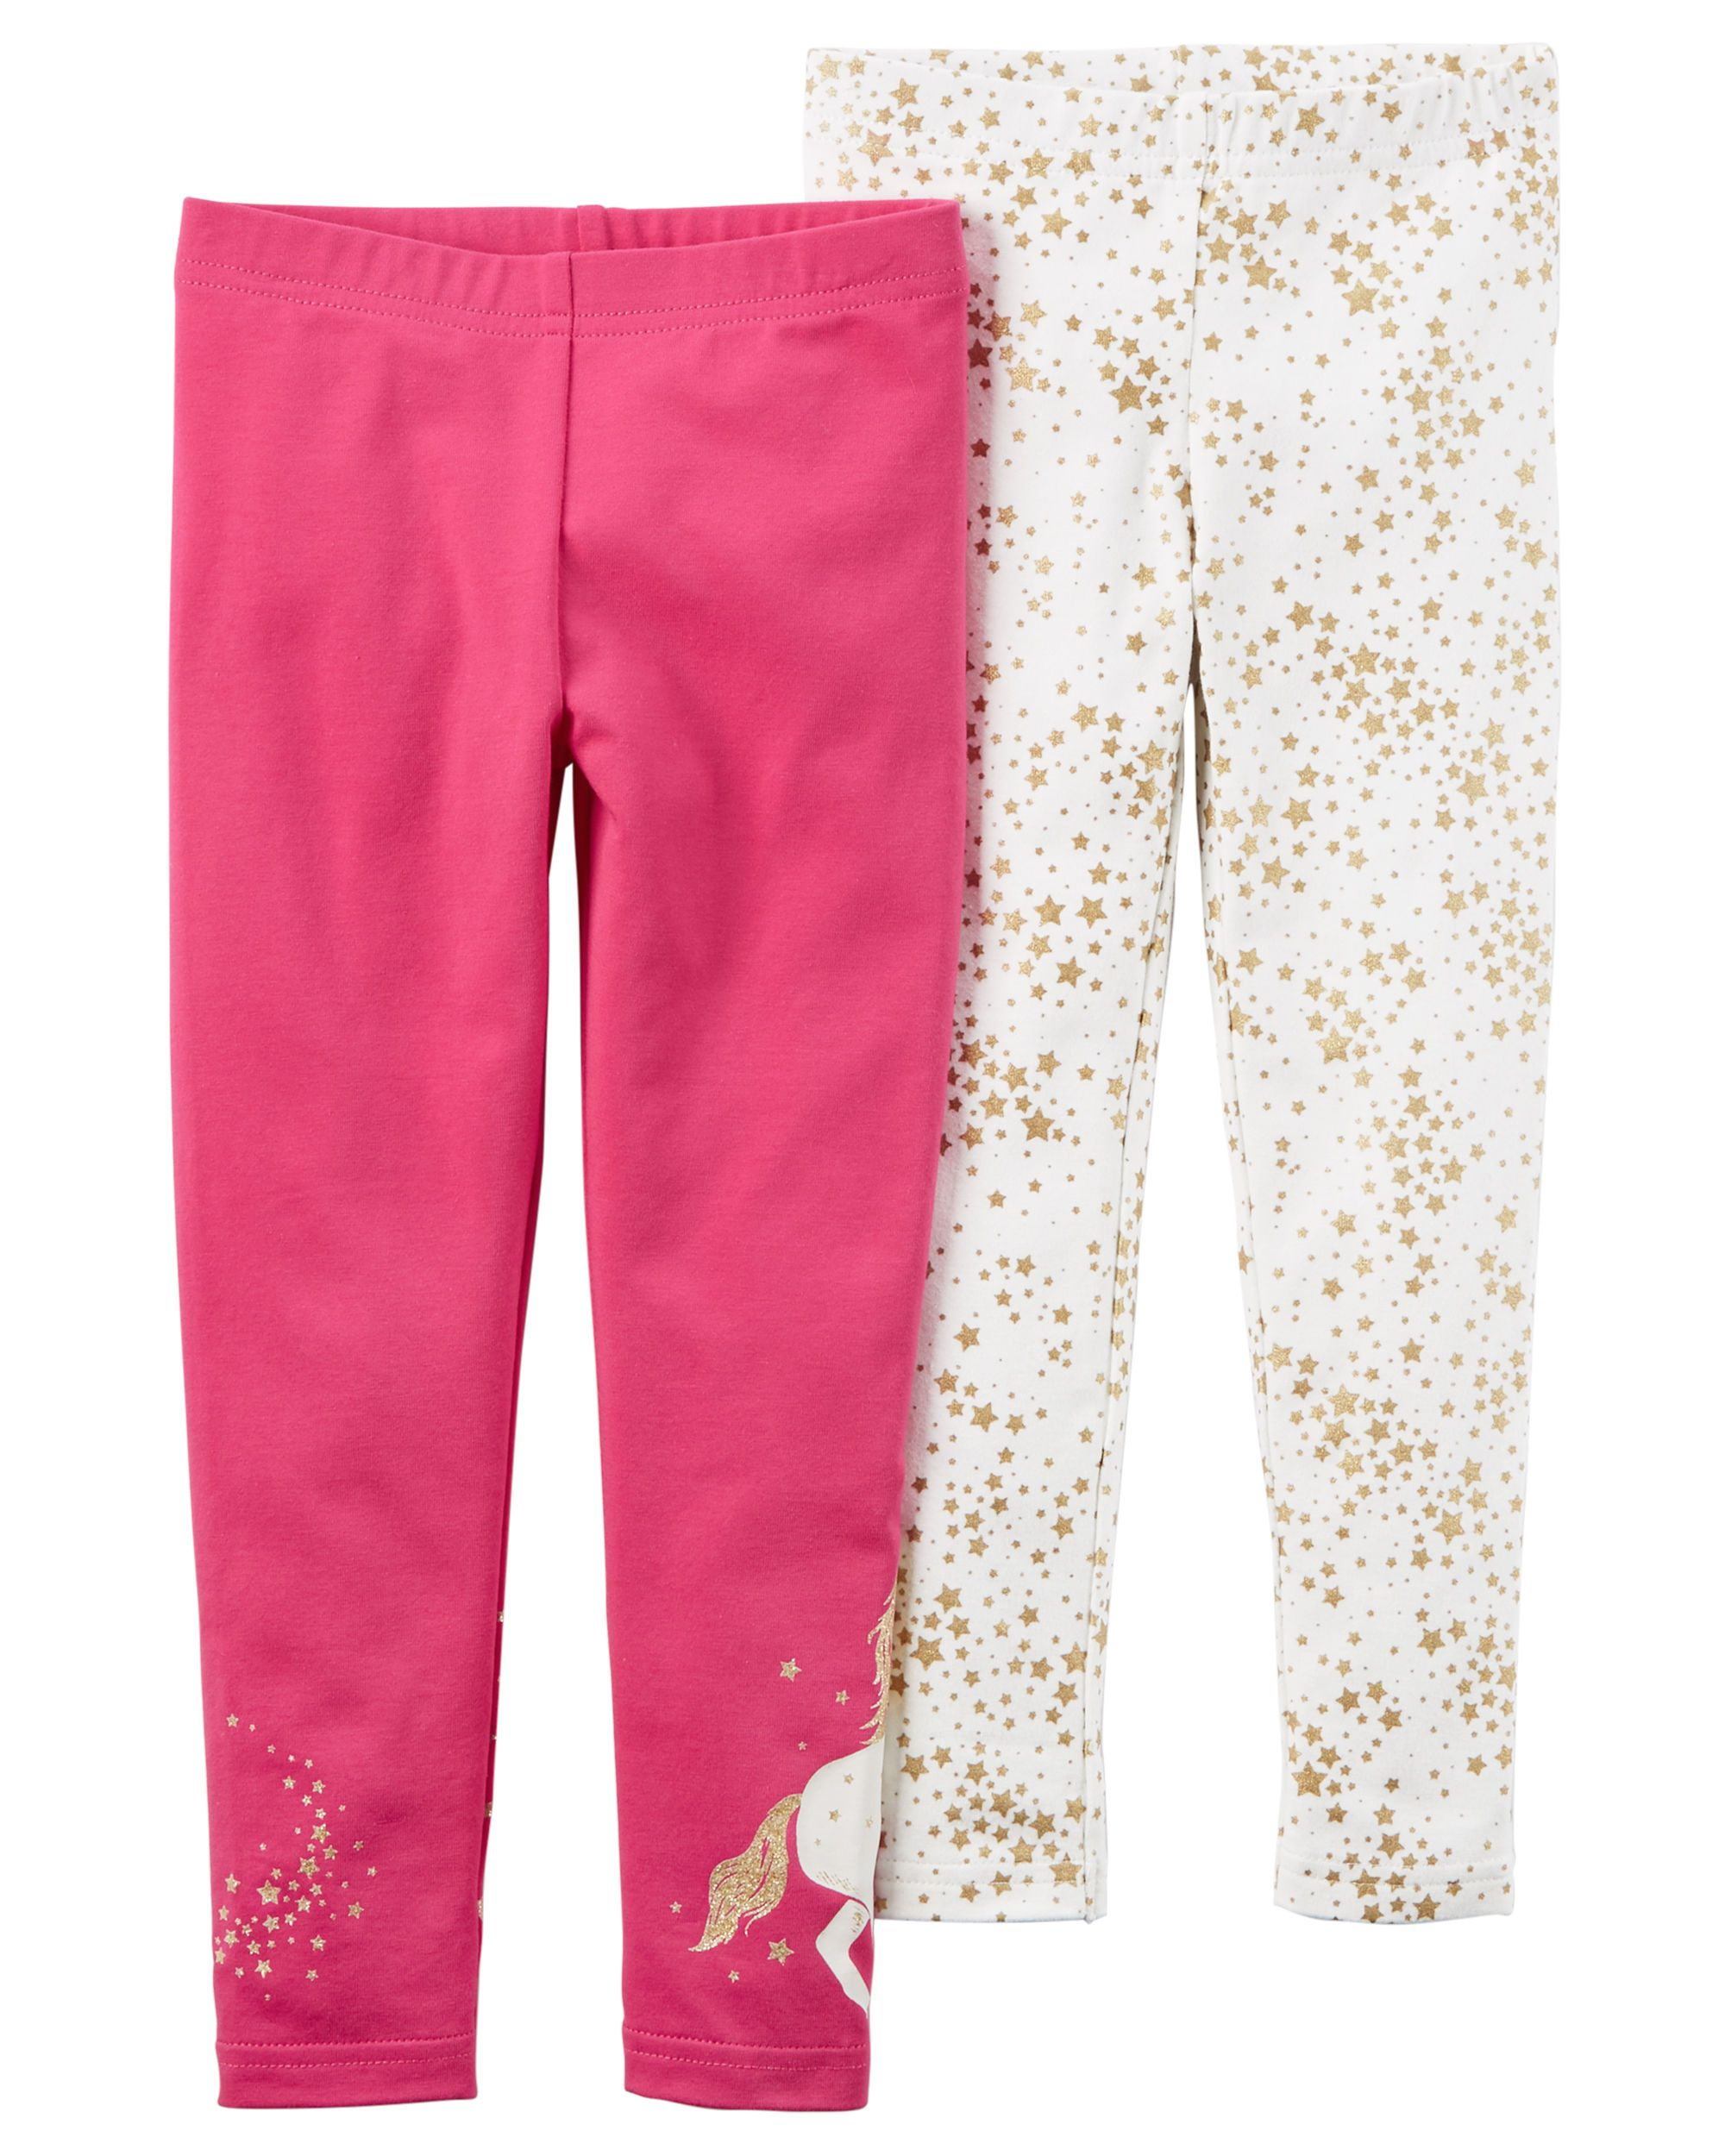 29555521b Toddler Girl 2-Pack Leggings from Carters.com. Shop clothing & accessories  from a trusted name in kids, toddlers, and baby clothes.